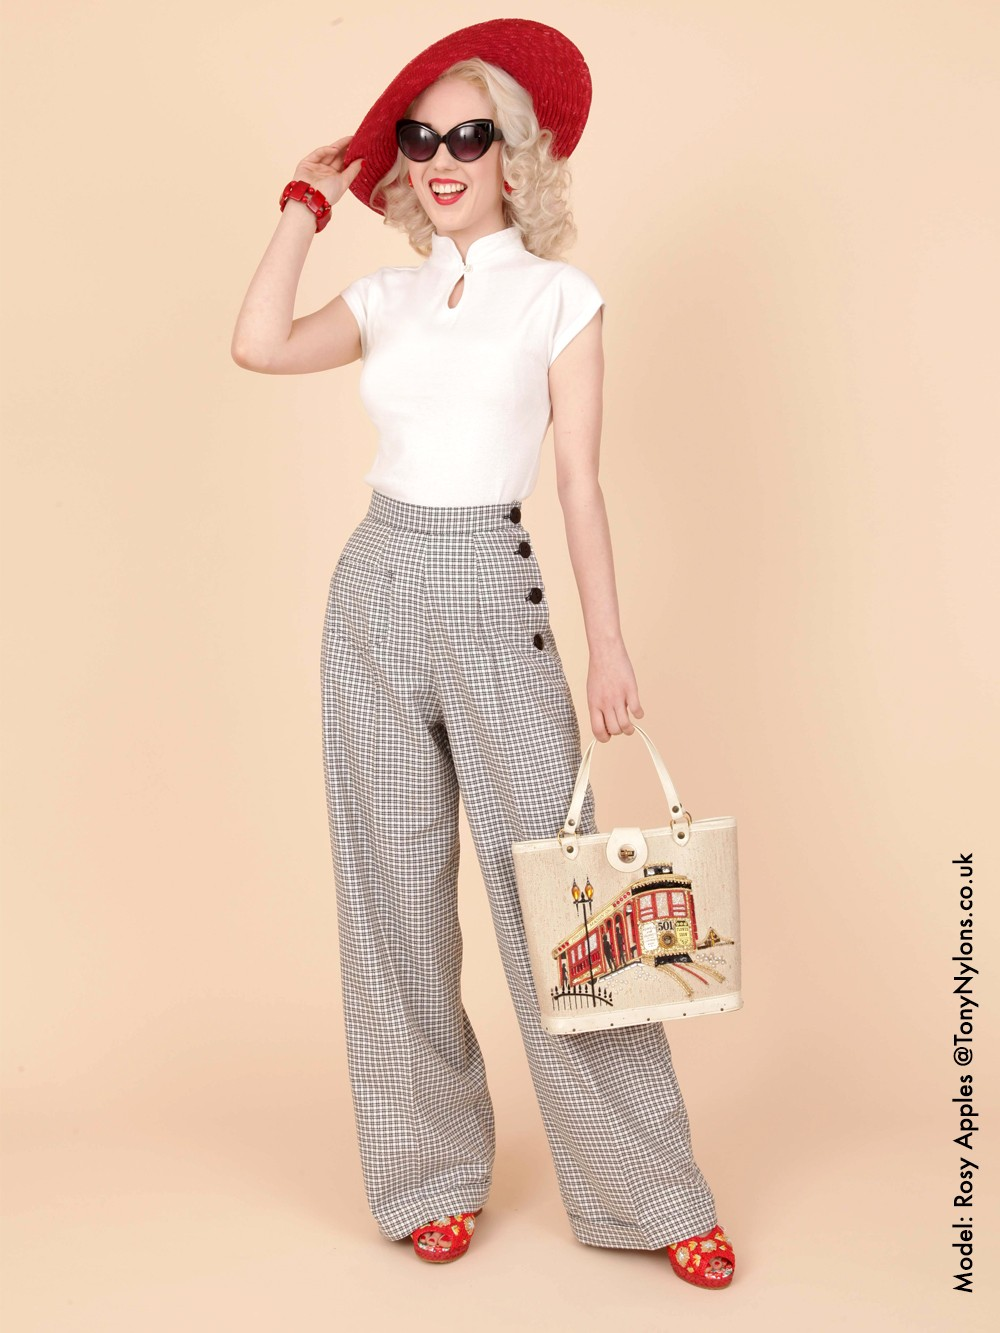 Lastest  Agent Carter TV Show Women And Men Wearing These Classic Fashions Today We Searched The Web And Linked To The Best 1940s Style Clothing Online Click On A Category Below To Begin Shopping Or Read Details Articles About 1940s